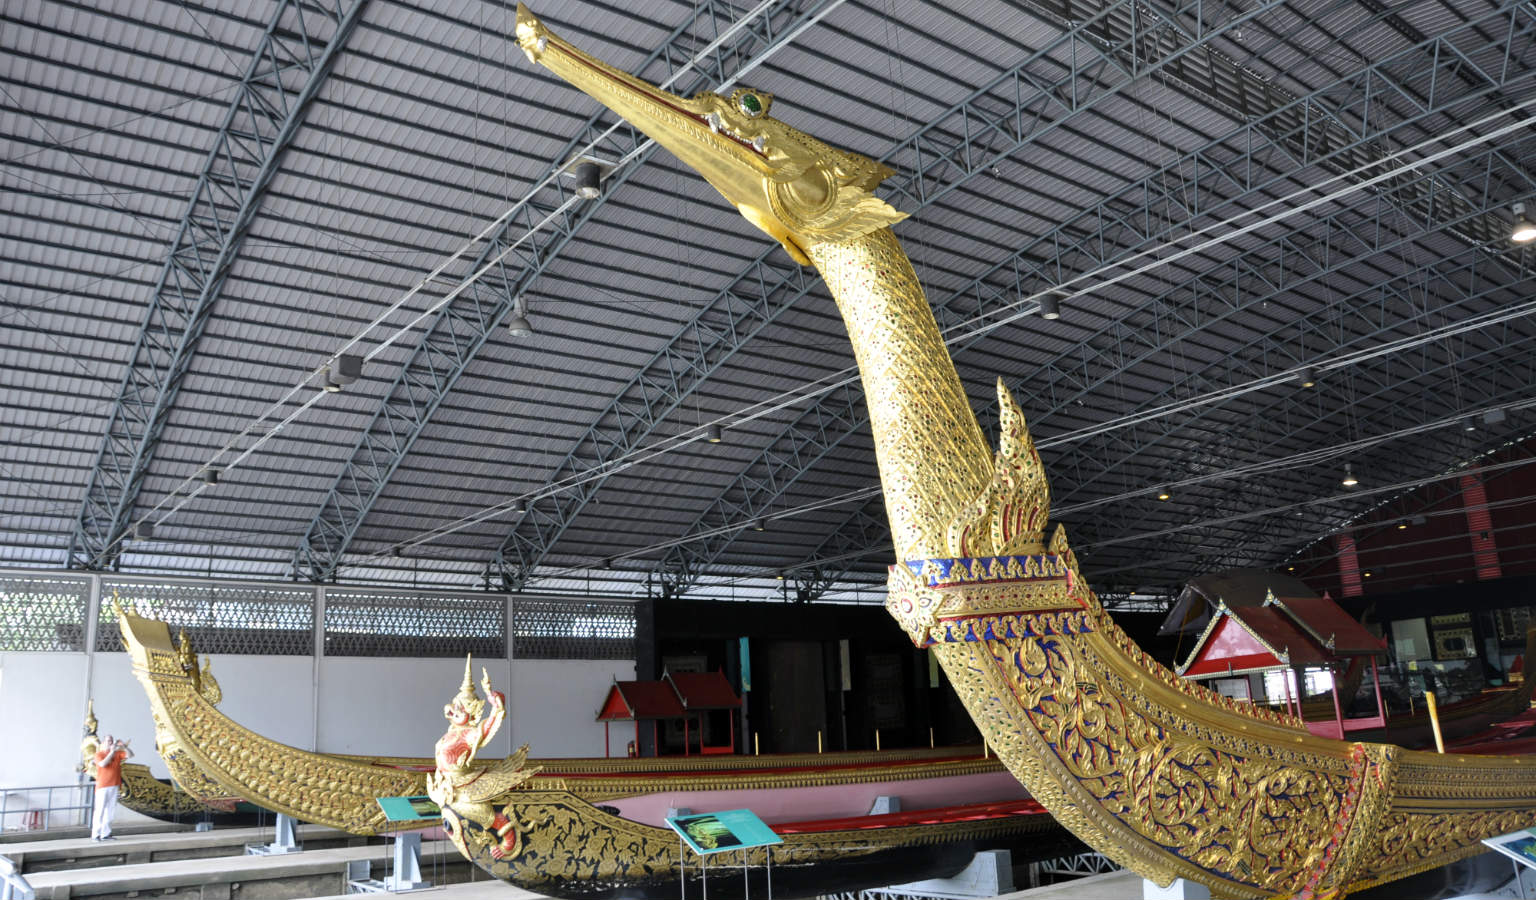 The royal barges in the National Museum of Royal Barges in Bangkok